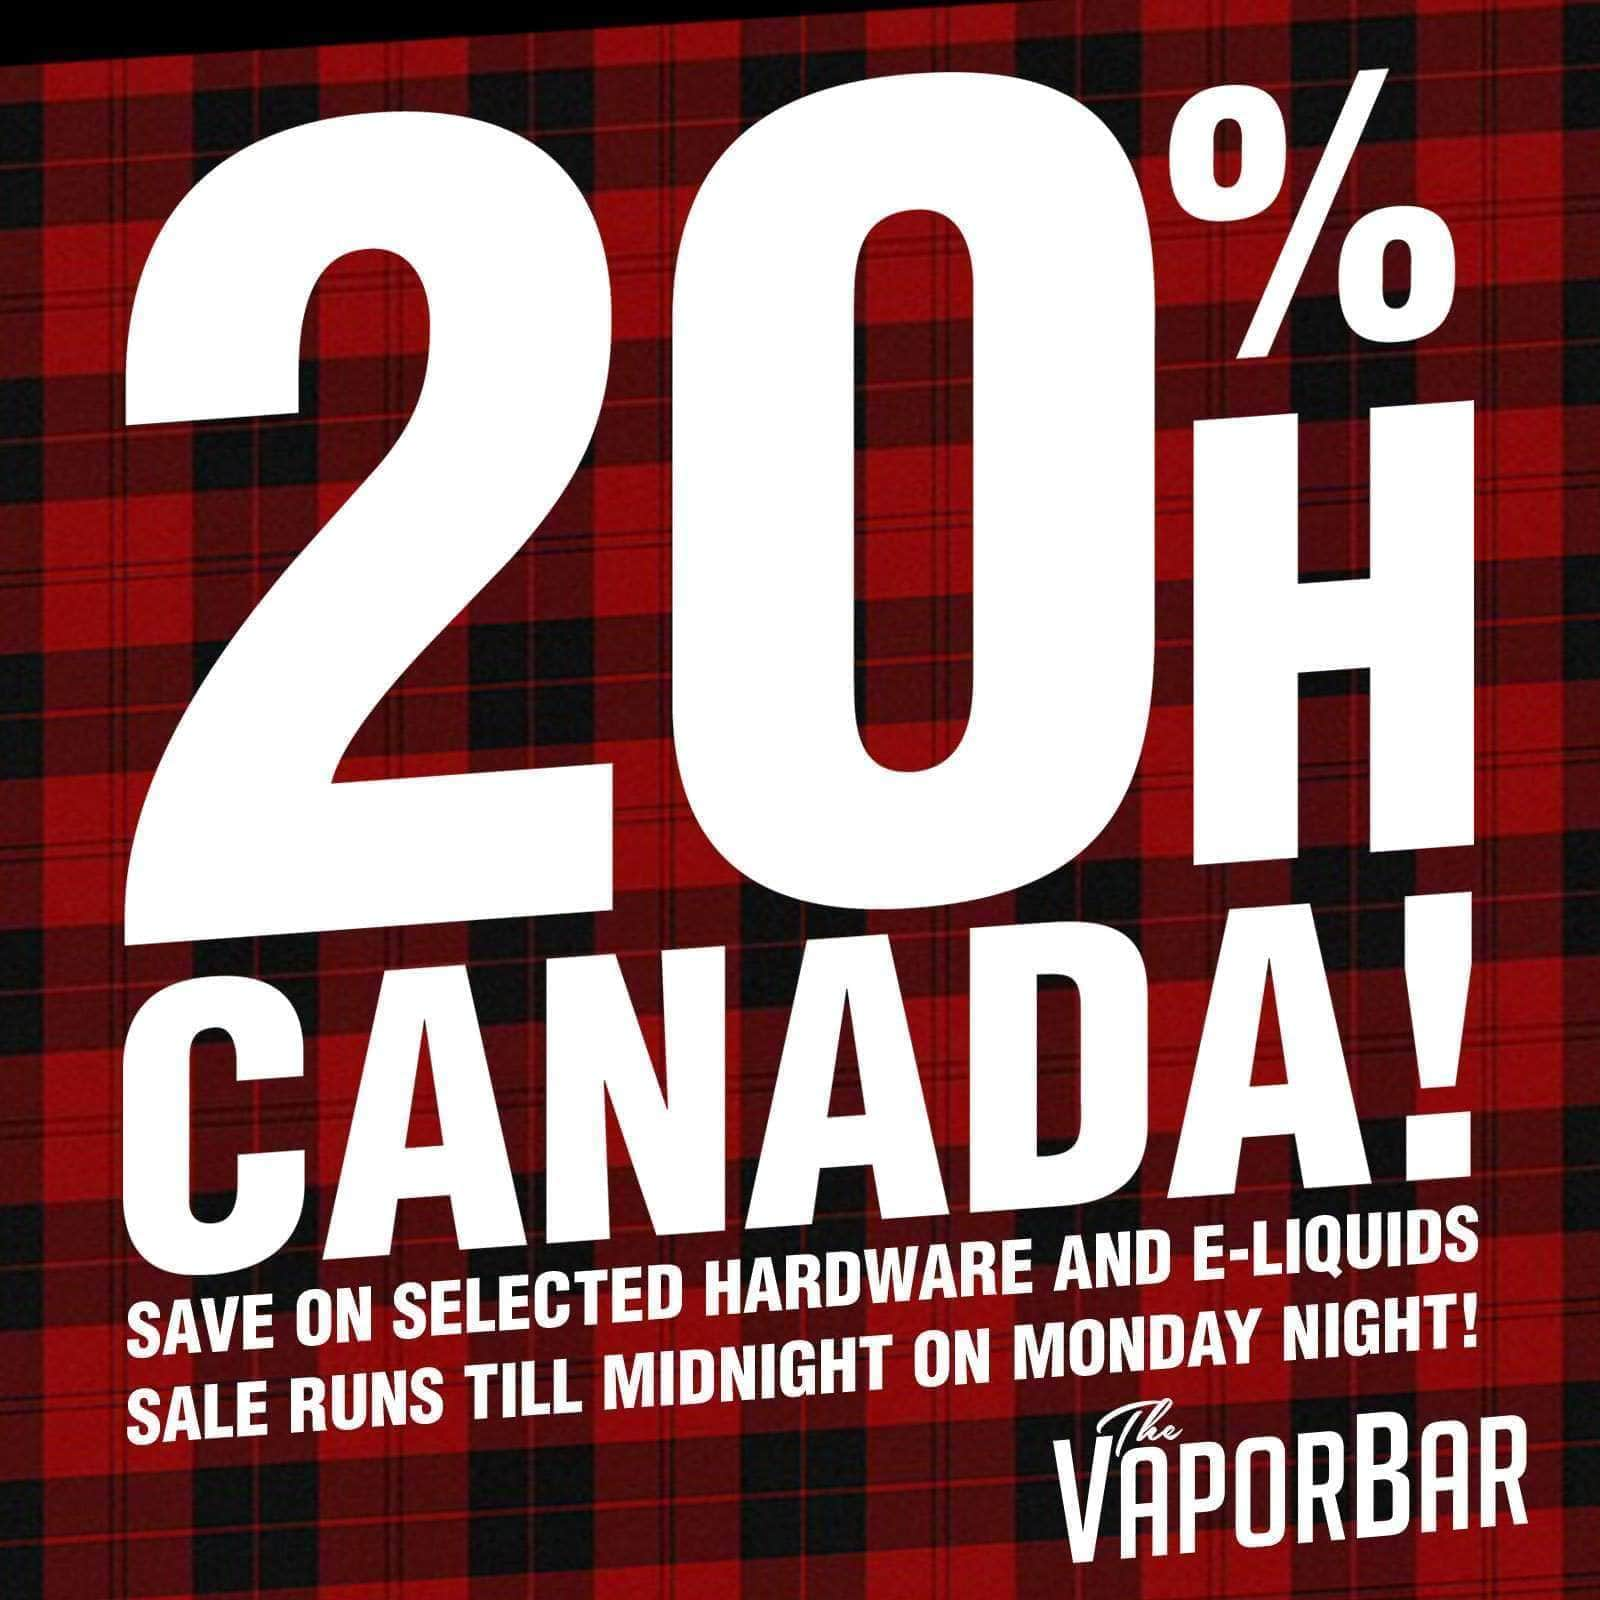 OH CANADA! WEEKEND SALE!